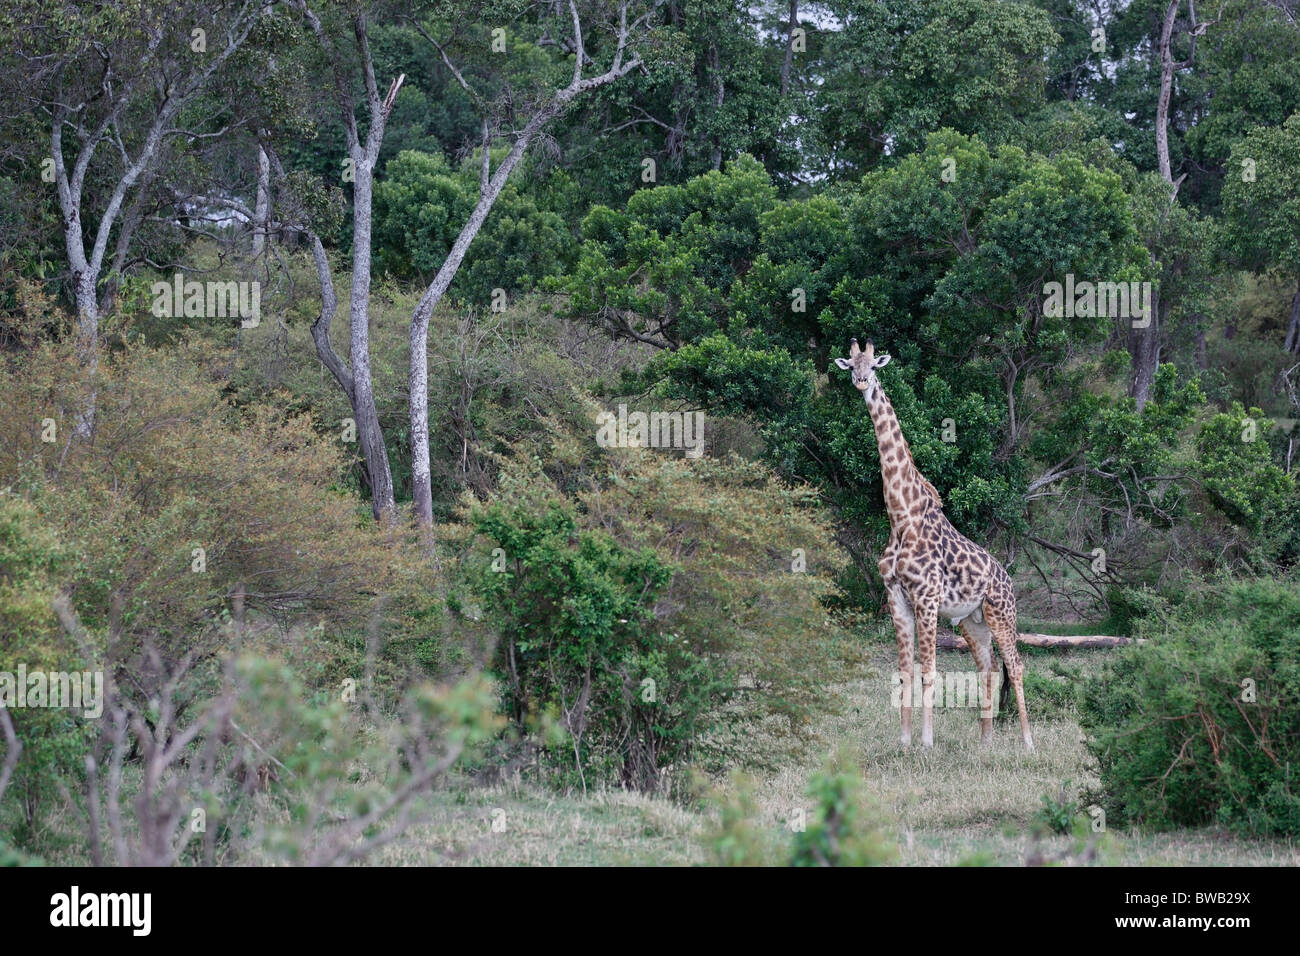 Masai Mara giraffe, Kenya. Stock Photo